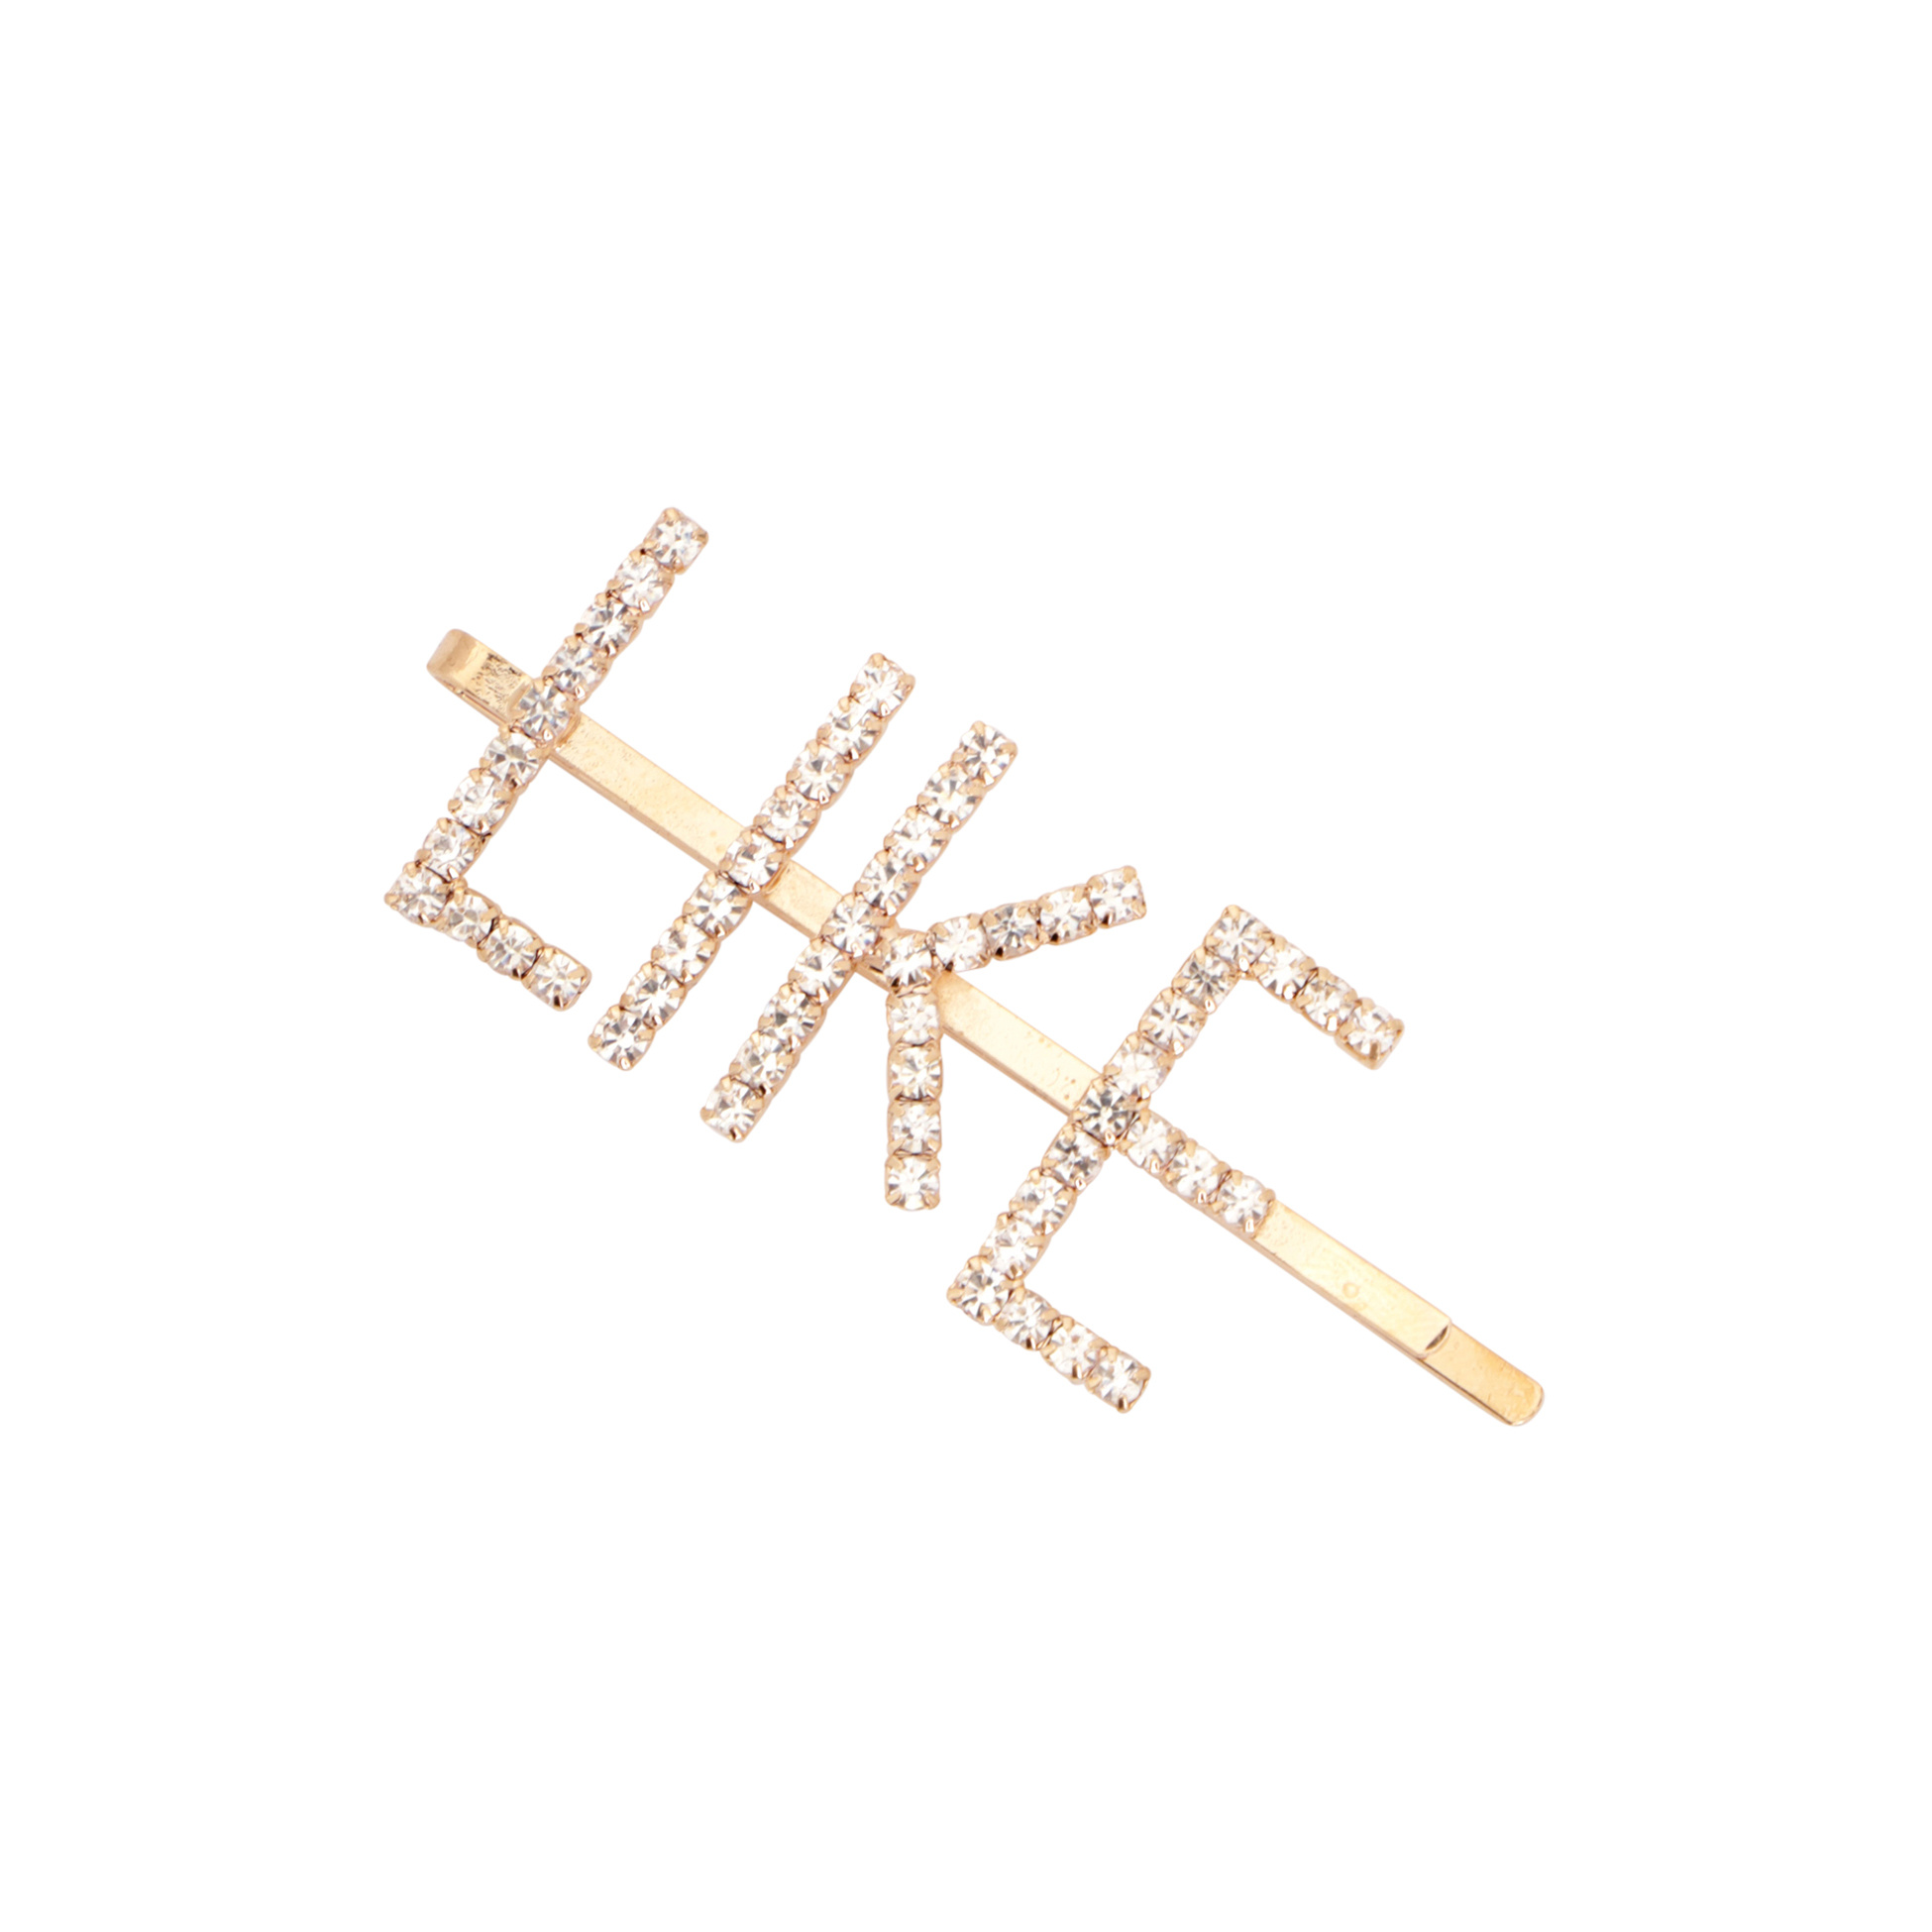 HAIRPIN LIKE LOGO WITH CRYSTALS